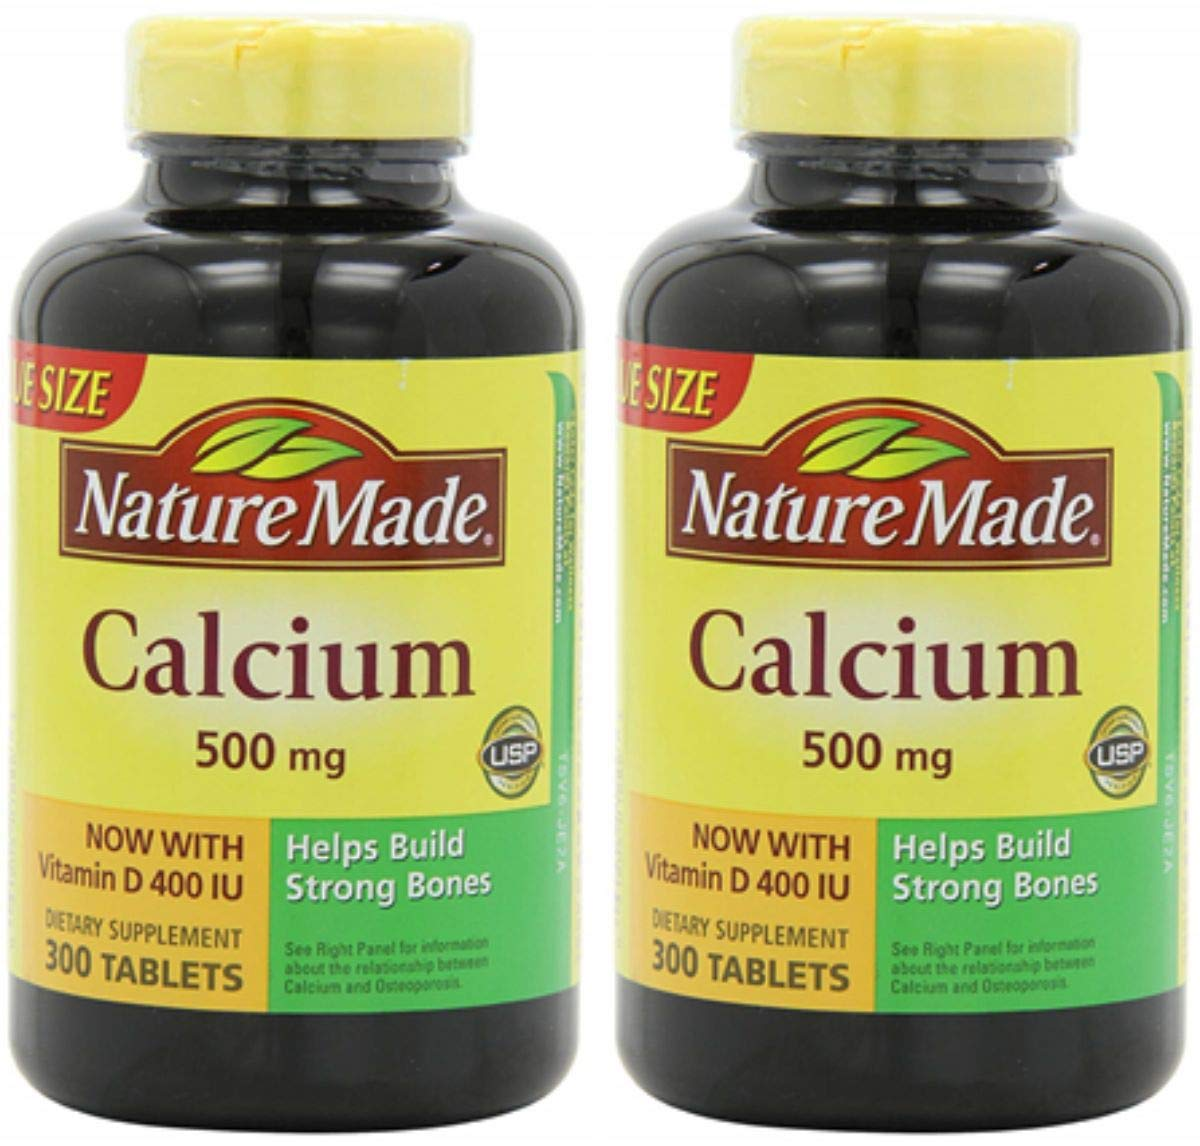 Nature Made Calcium (Carbonate) 500 mg w. Vitamin D3 400 IU Tablets 300 Ct (2 Pack 300 Count)